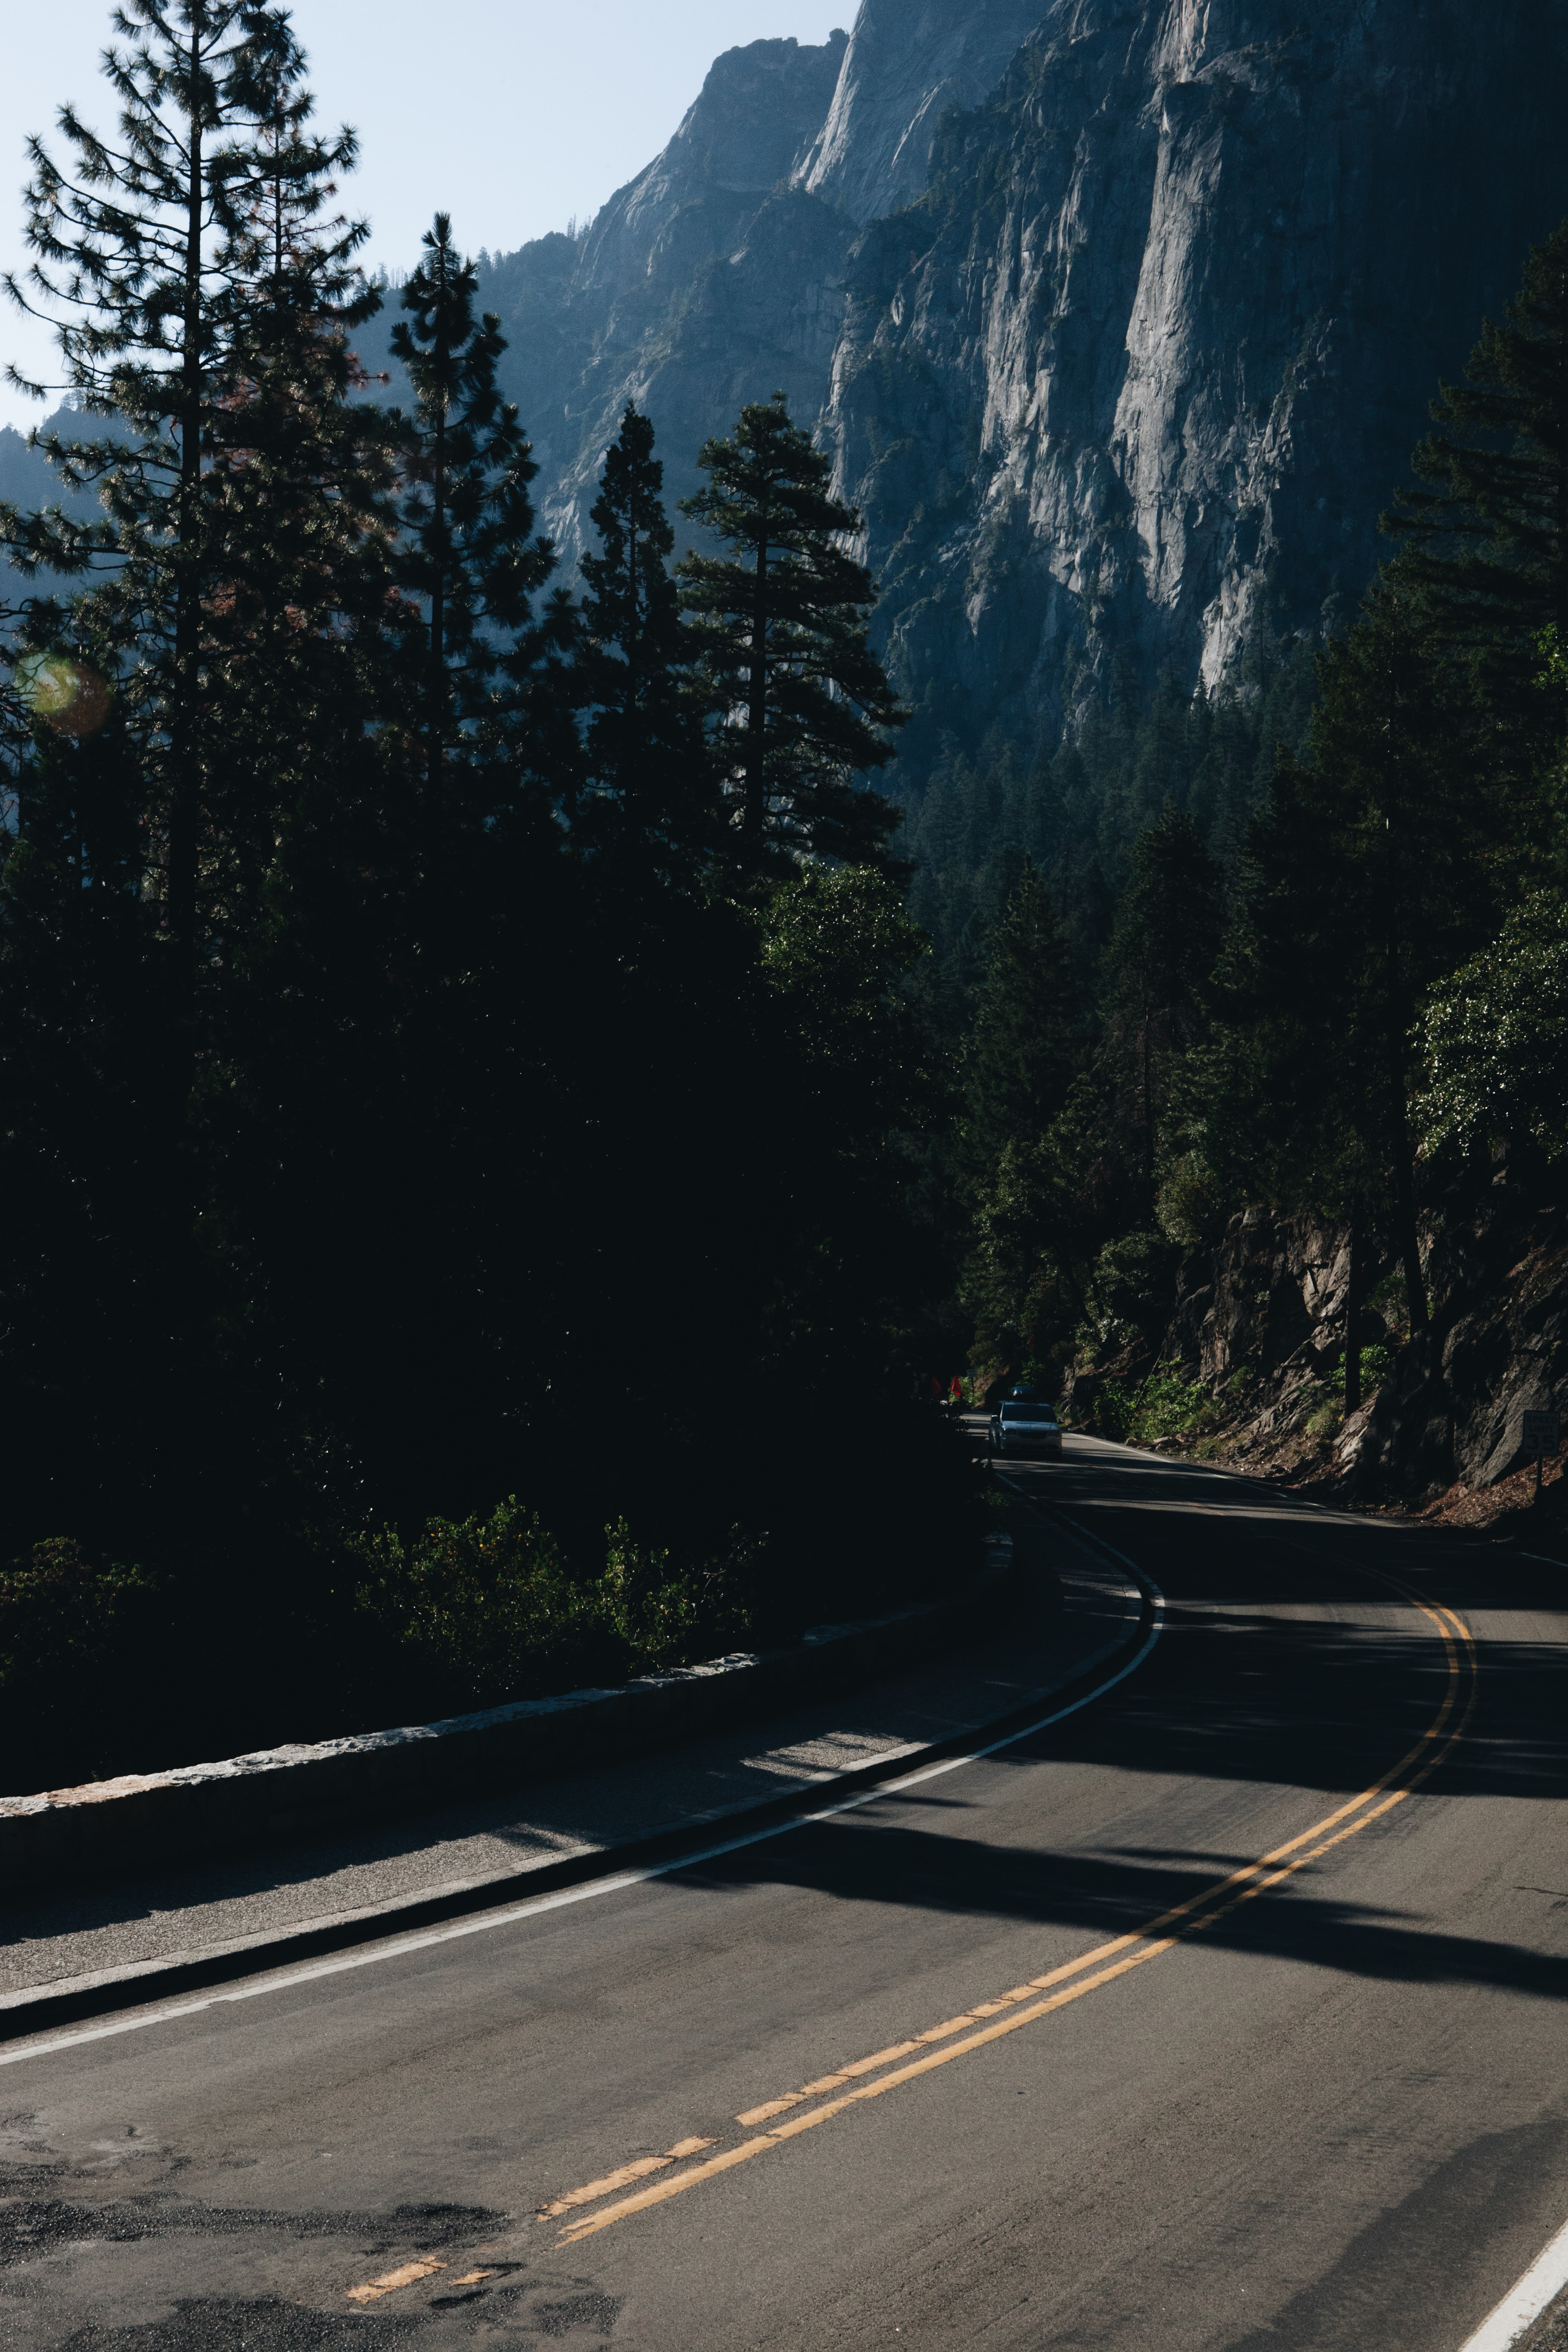 mountain pass with trees